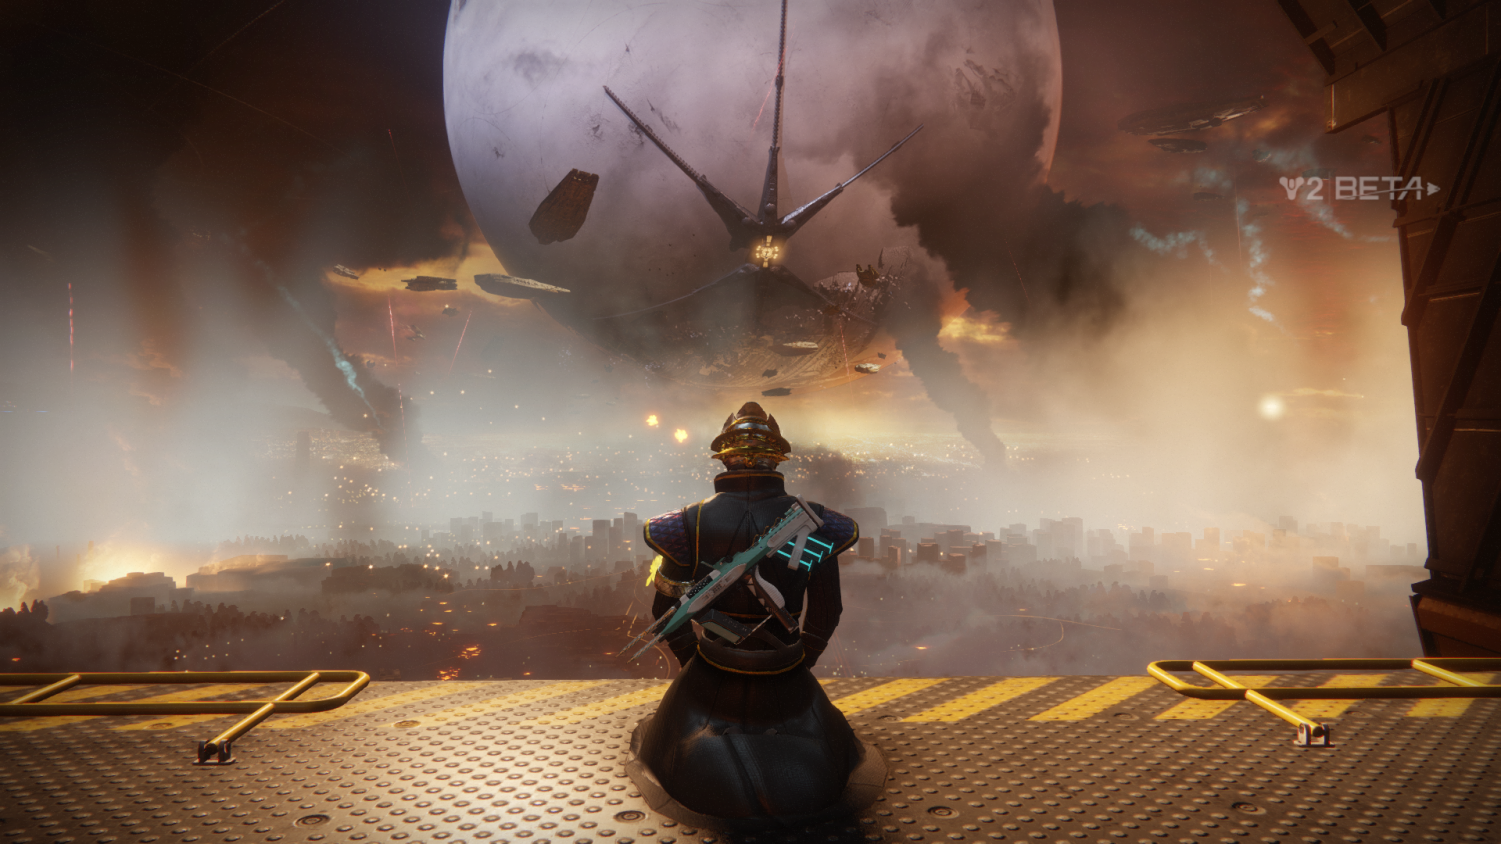 Screenshot taken during the Destiny 2 Beta two months prior to its official release.